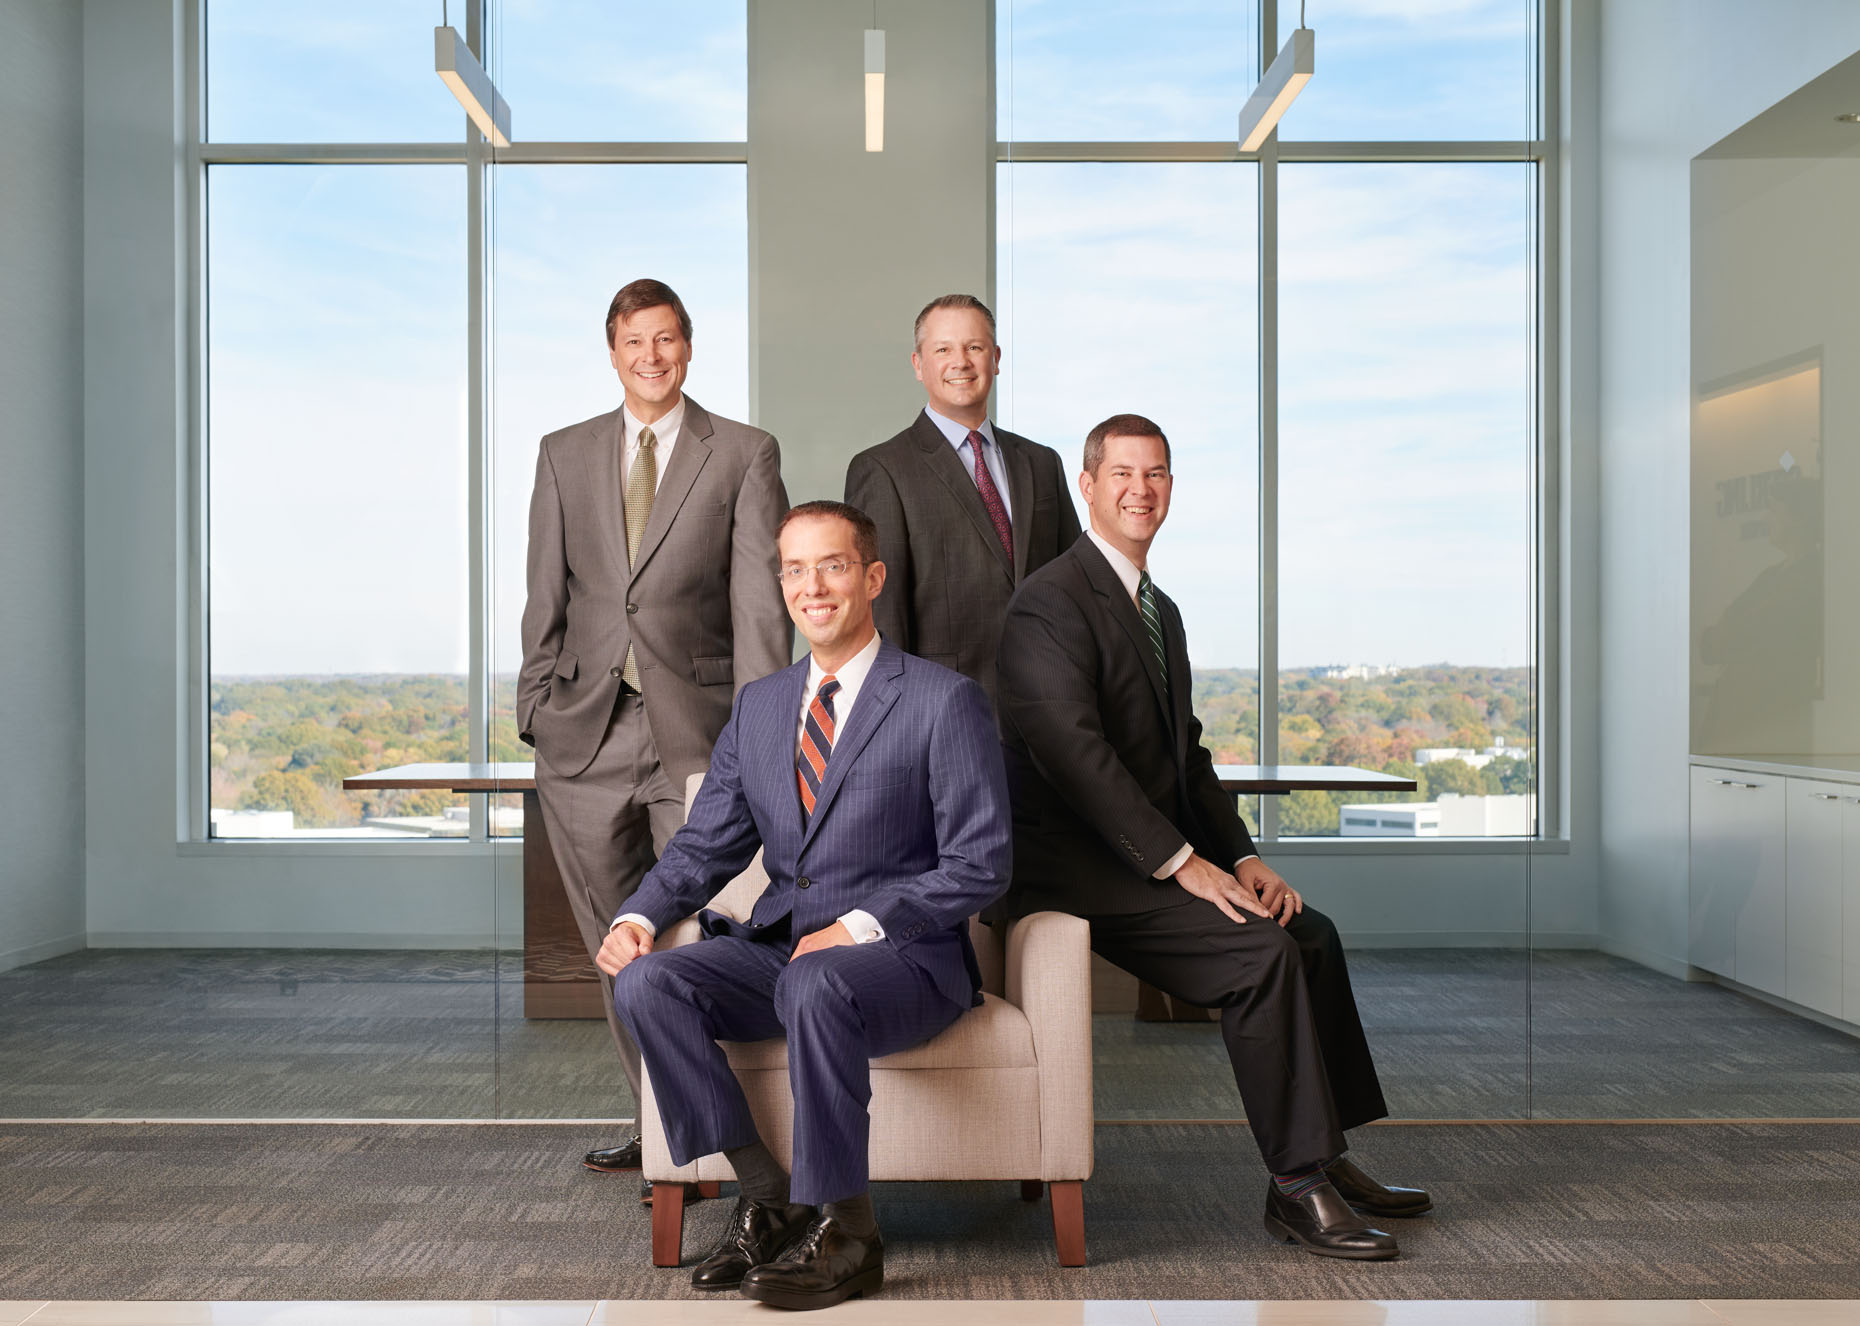 corporate-portraits-group-men-culture